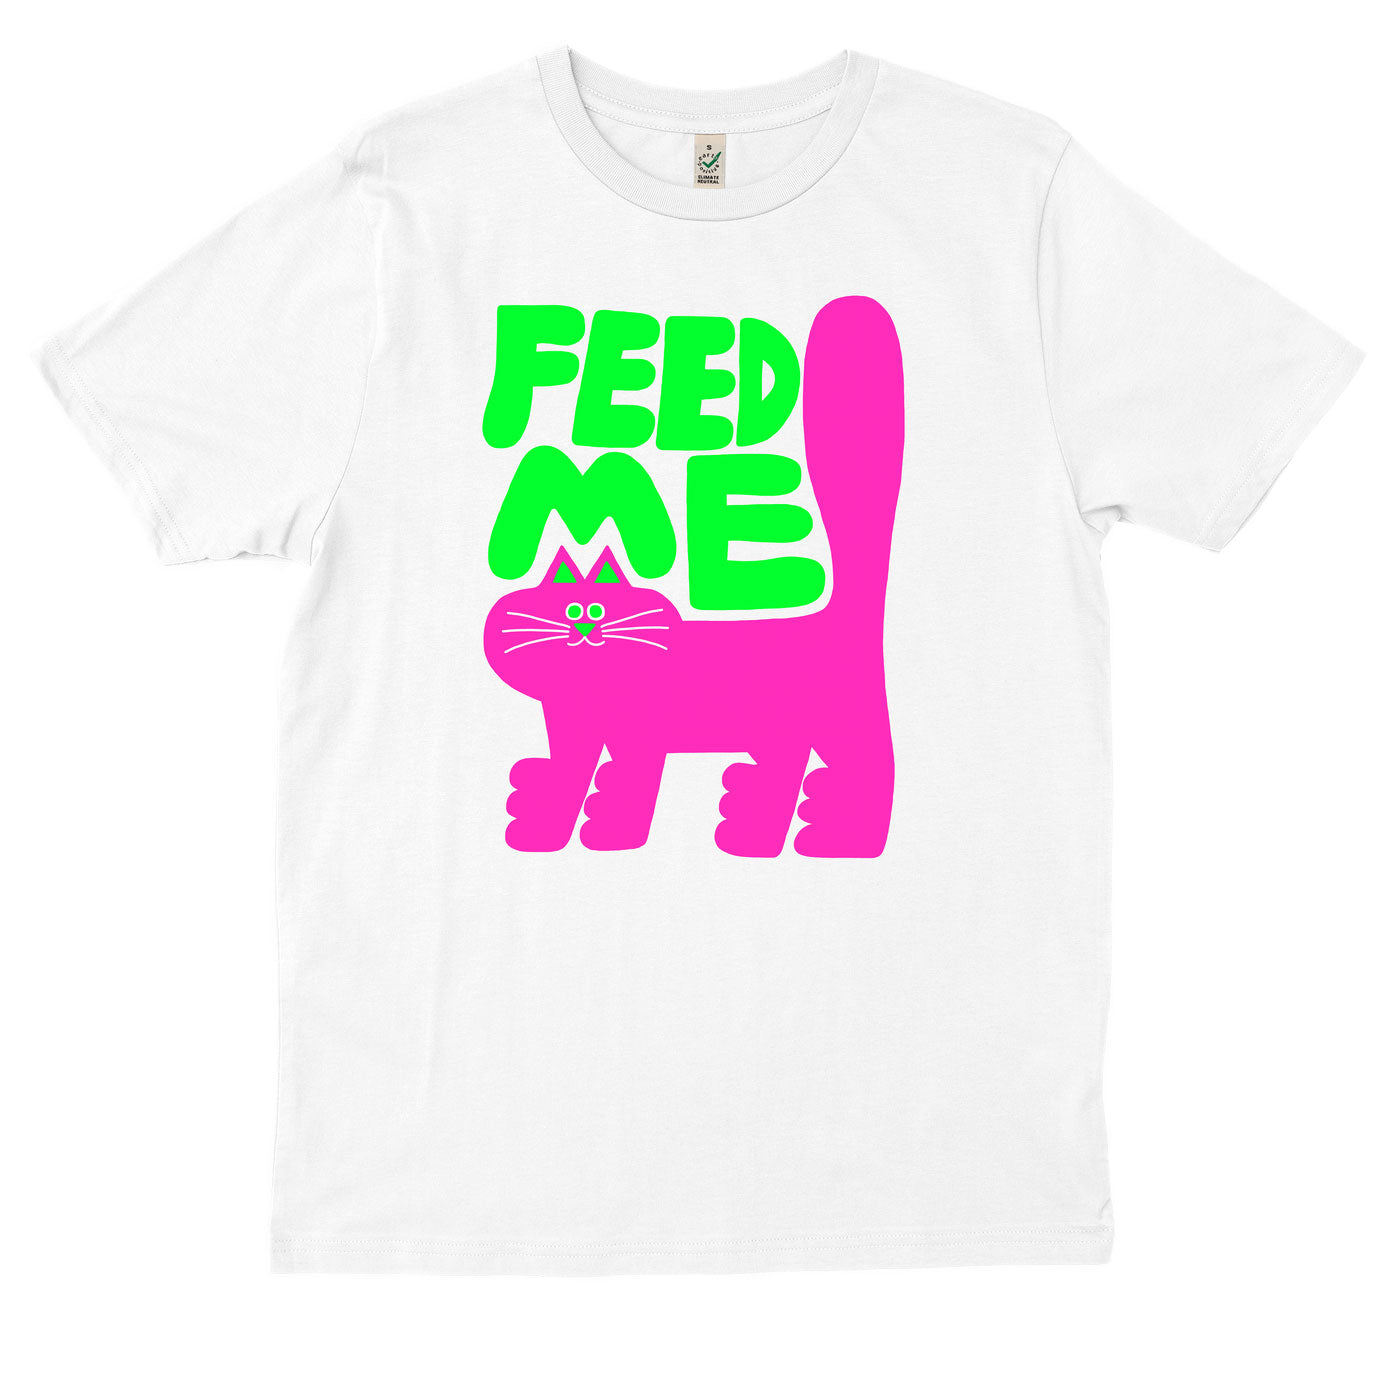 Super hot acid green & pink FEED ME slogan cat T-shirt by YUK FUN